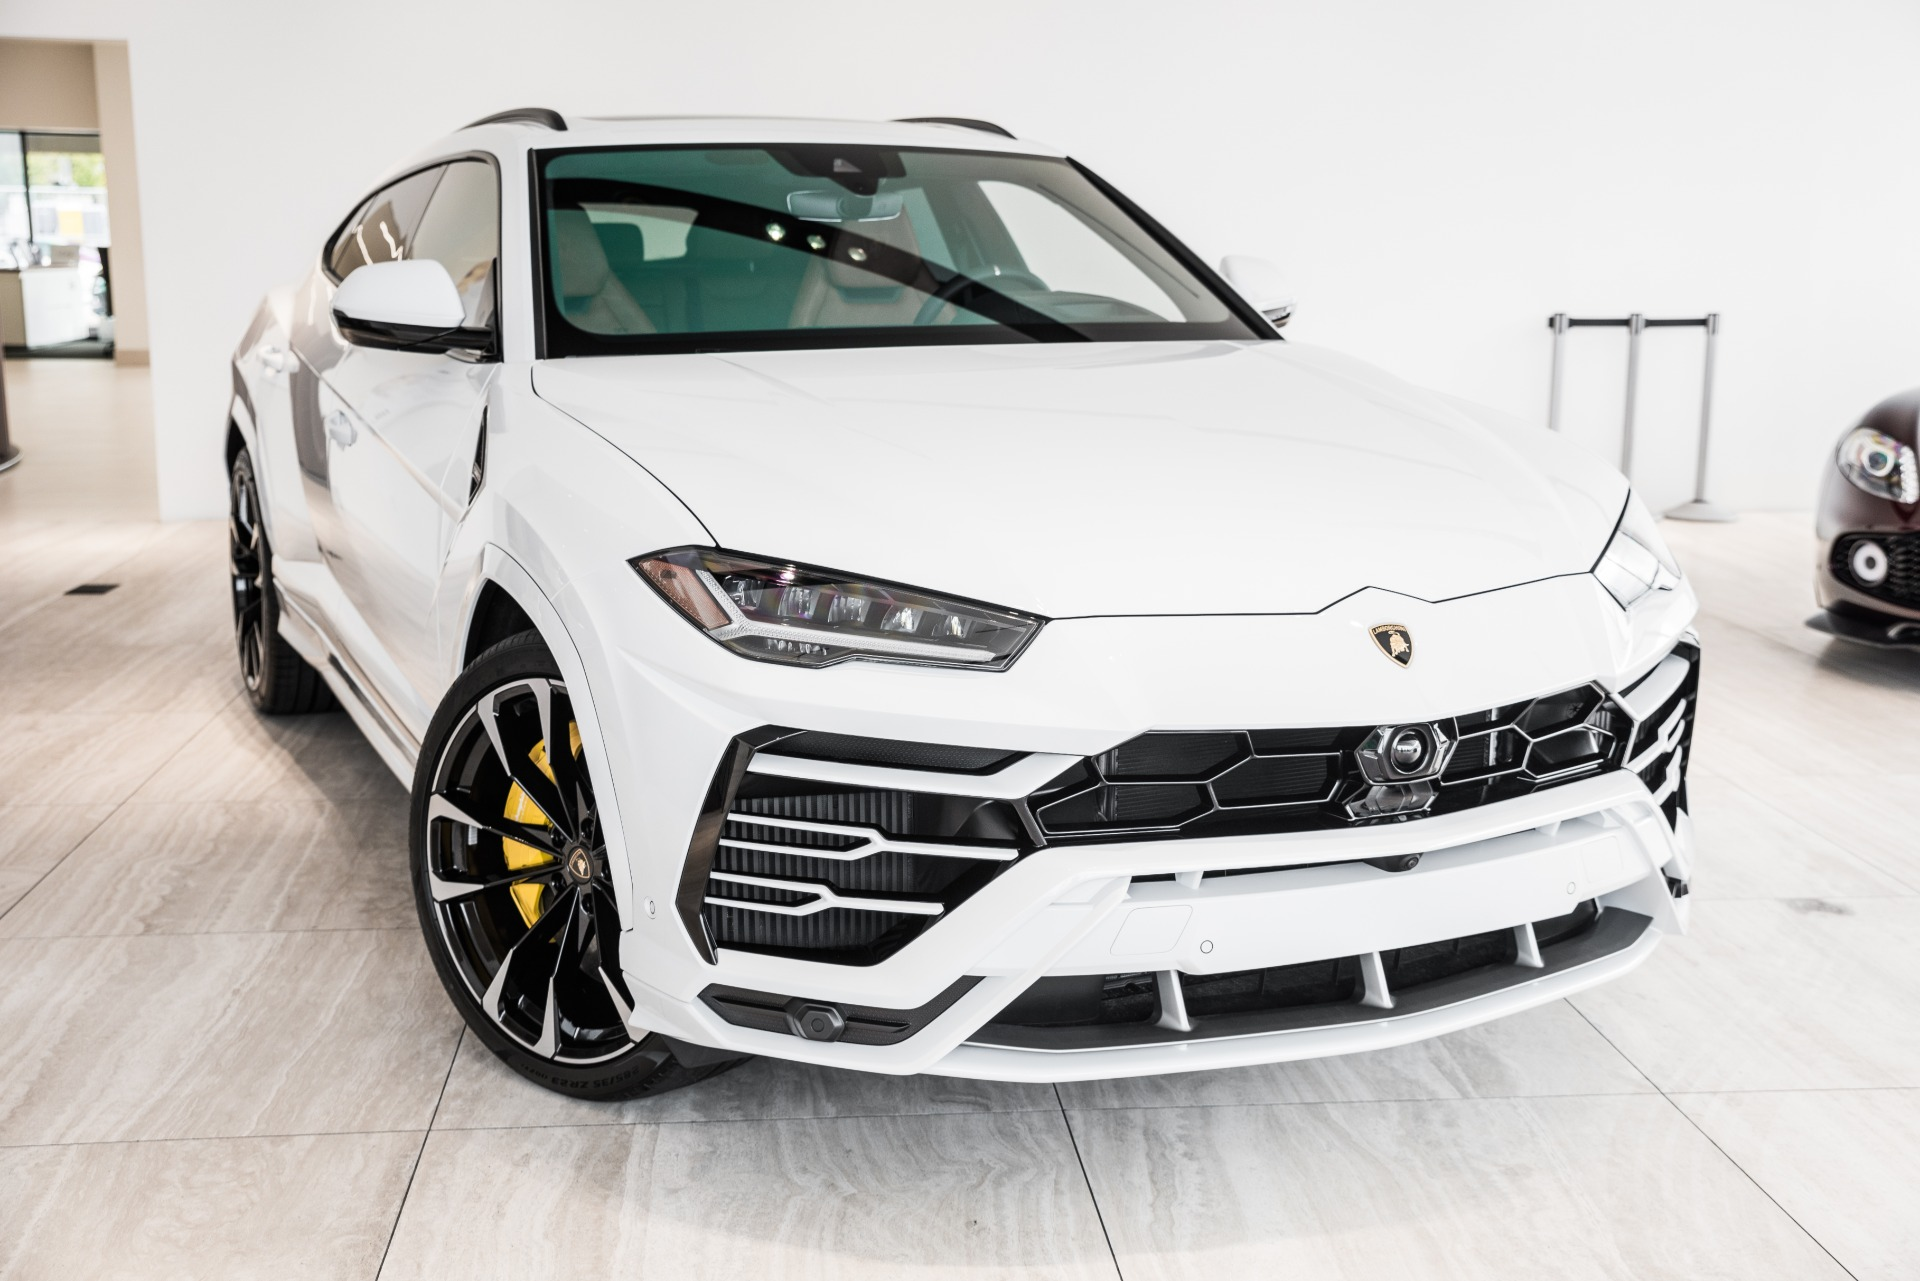 2019 lamborghini urus stock 8l03667a for sale near vienna va va lamborghini dealer for sale in vienna va 8l03667a exclusive automotive group 2019 lamborghini urus stock 8l03667a